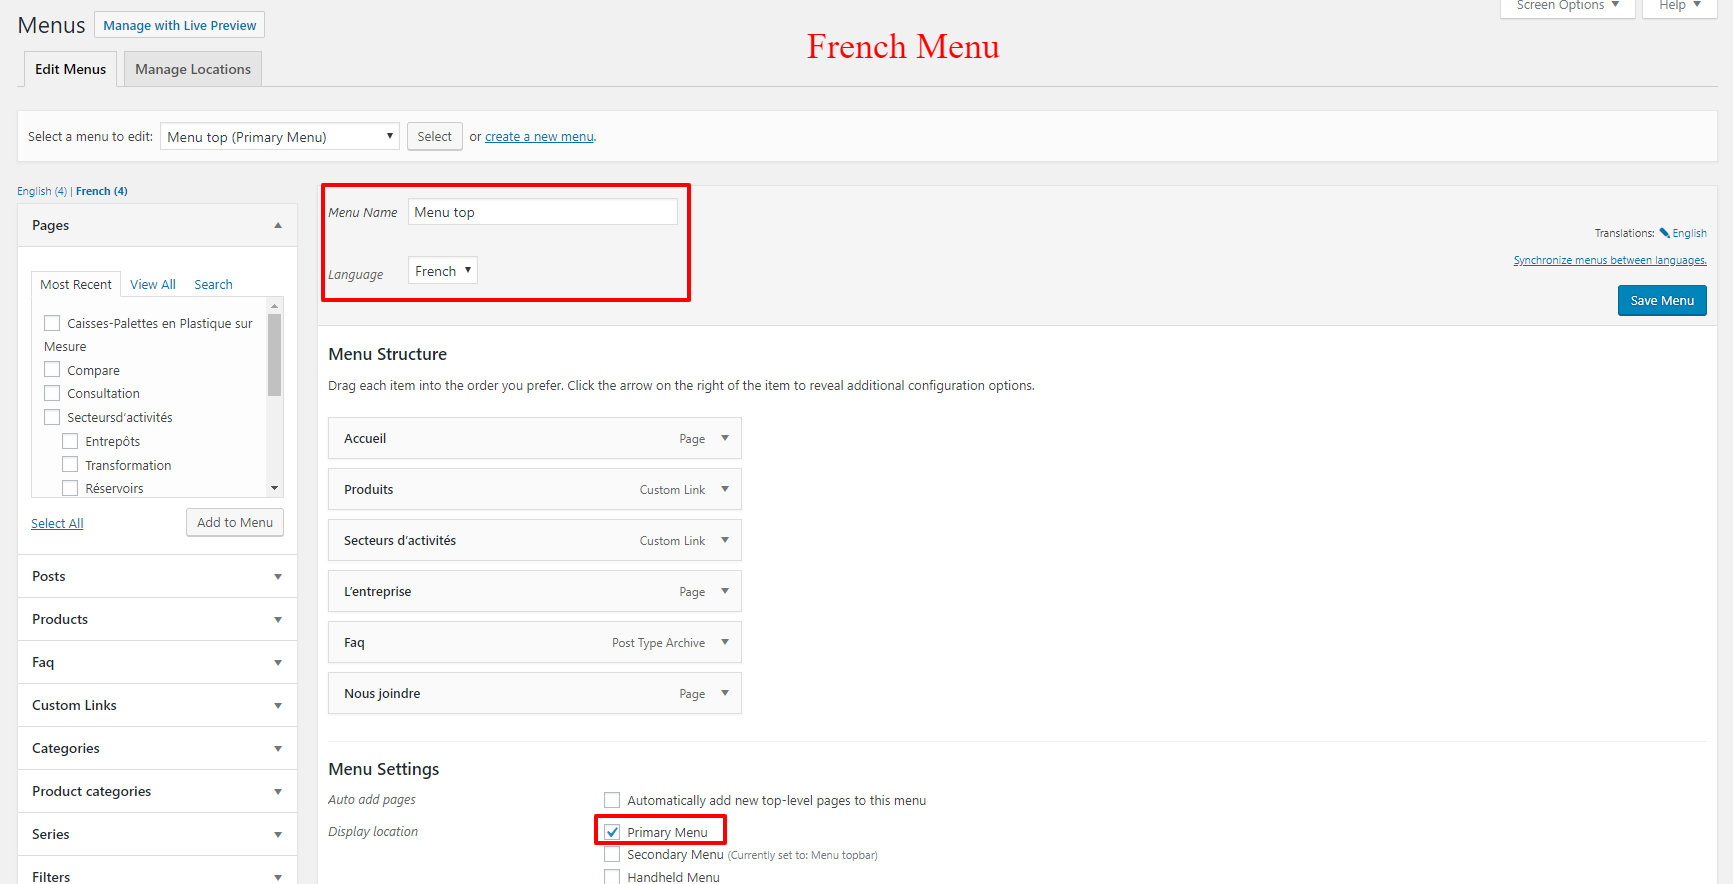 french-menu.png